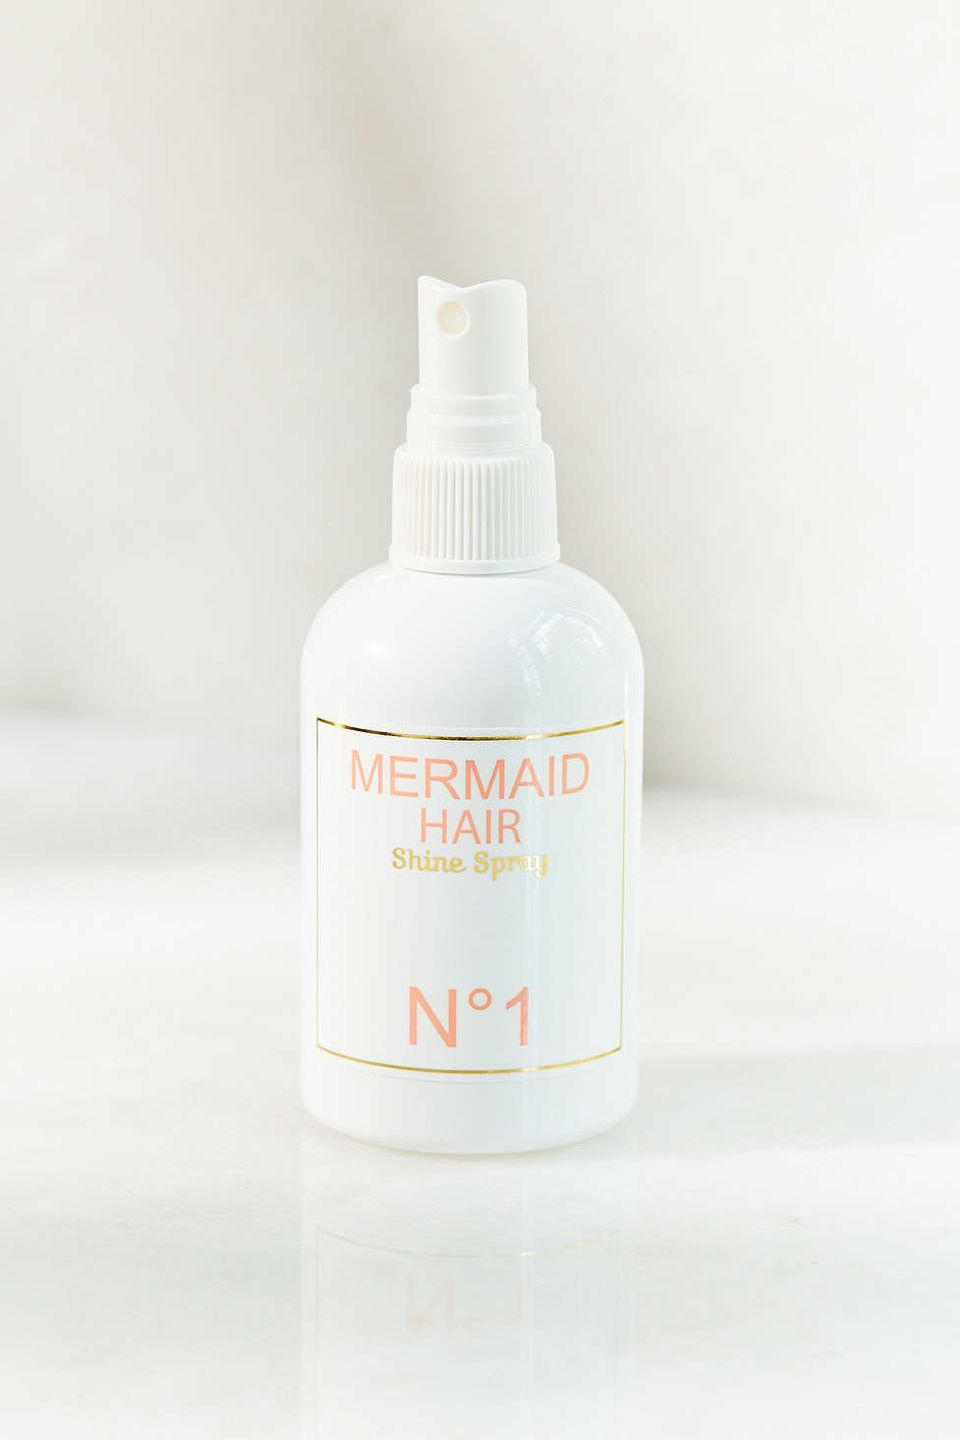 "Mermaid Hair Shine Spray, $28, <a href=""http://www.urbanoutfitters.com/urban/catalog/productdetail.jsp?id=33853193&catego"